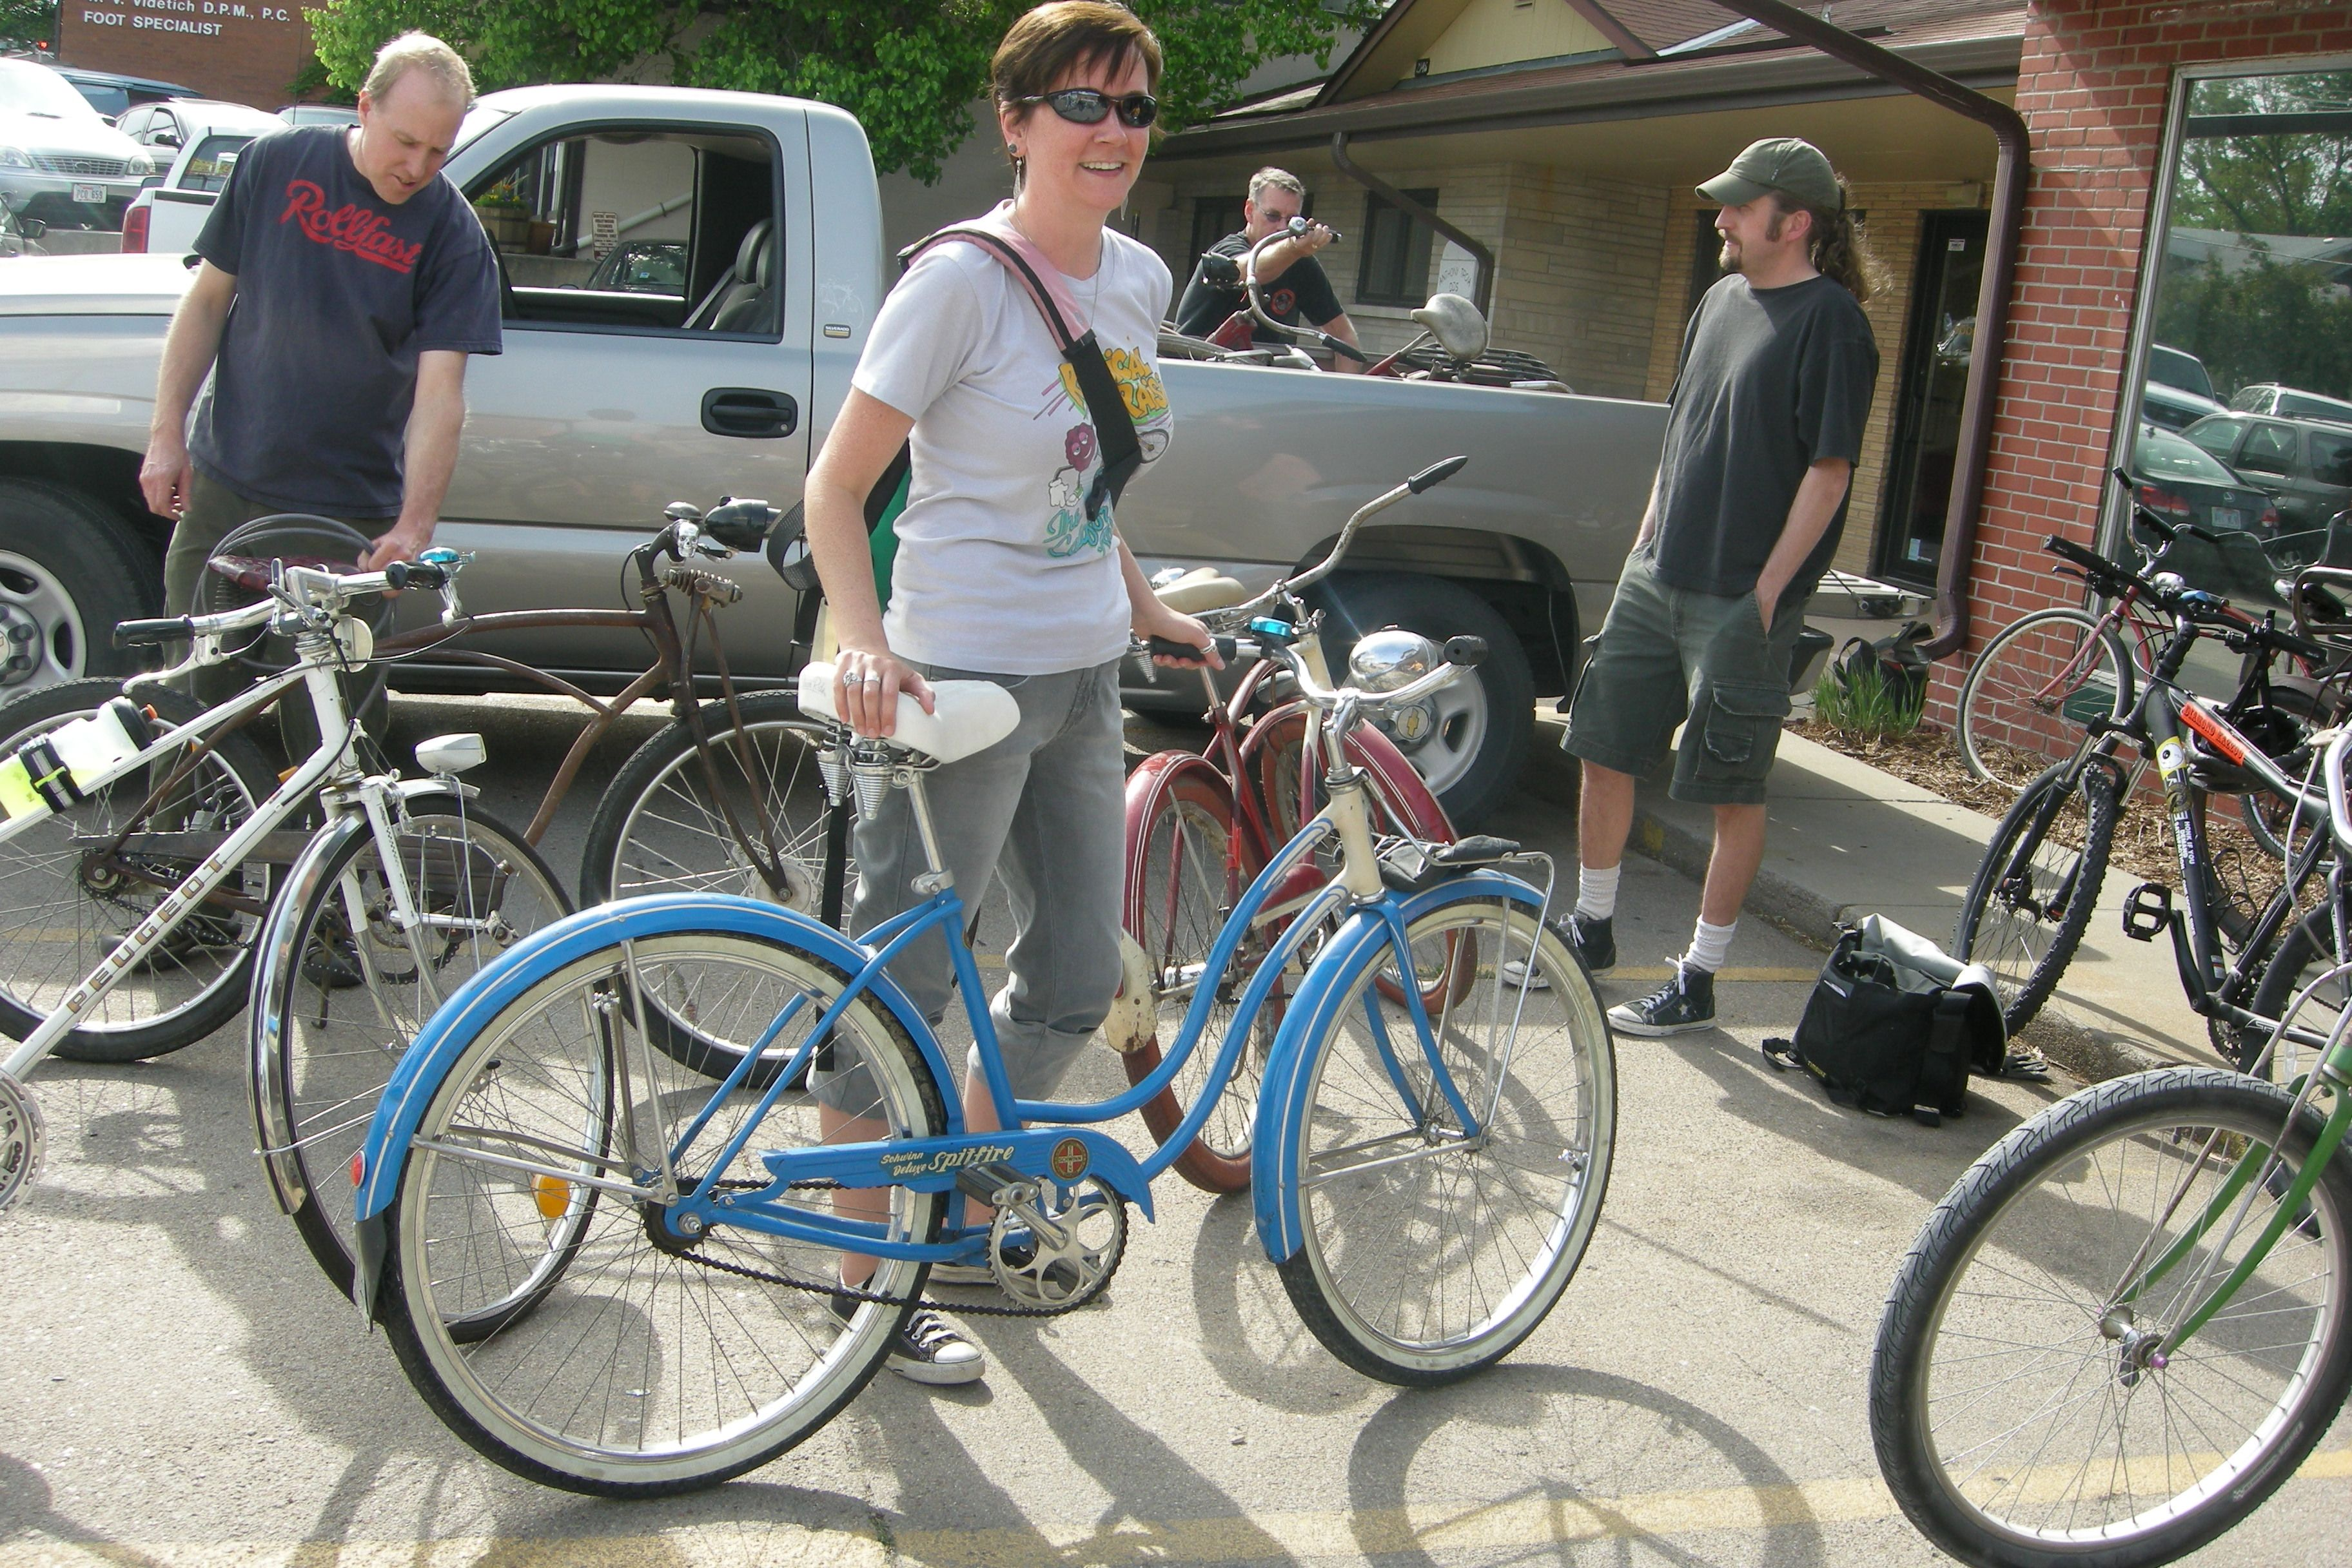 Sunday Rat Ride at Re-cycled, Lincoln NE.